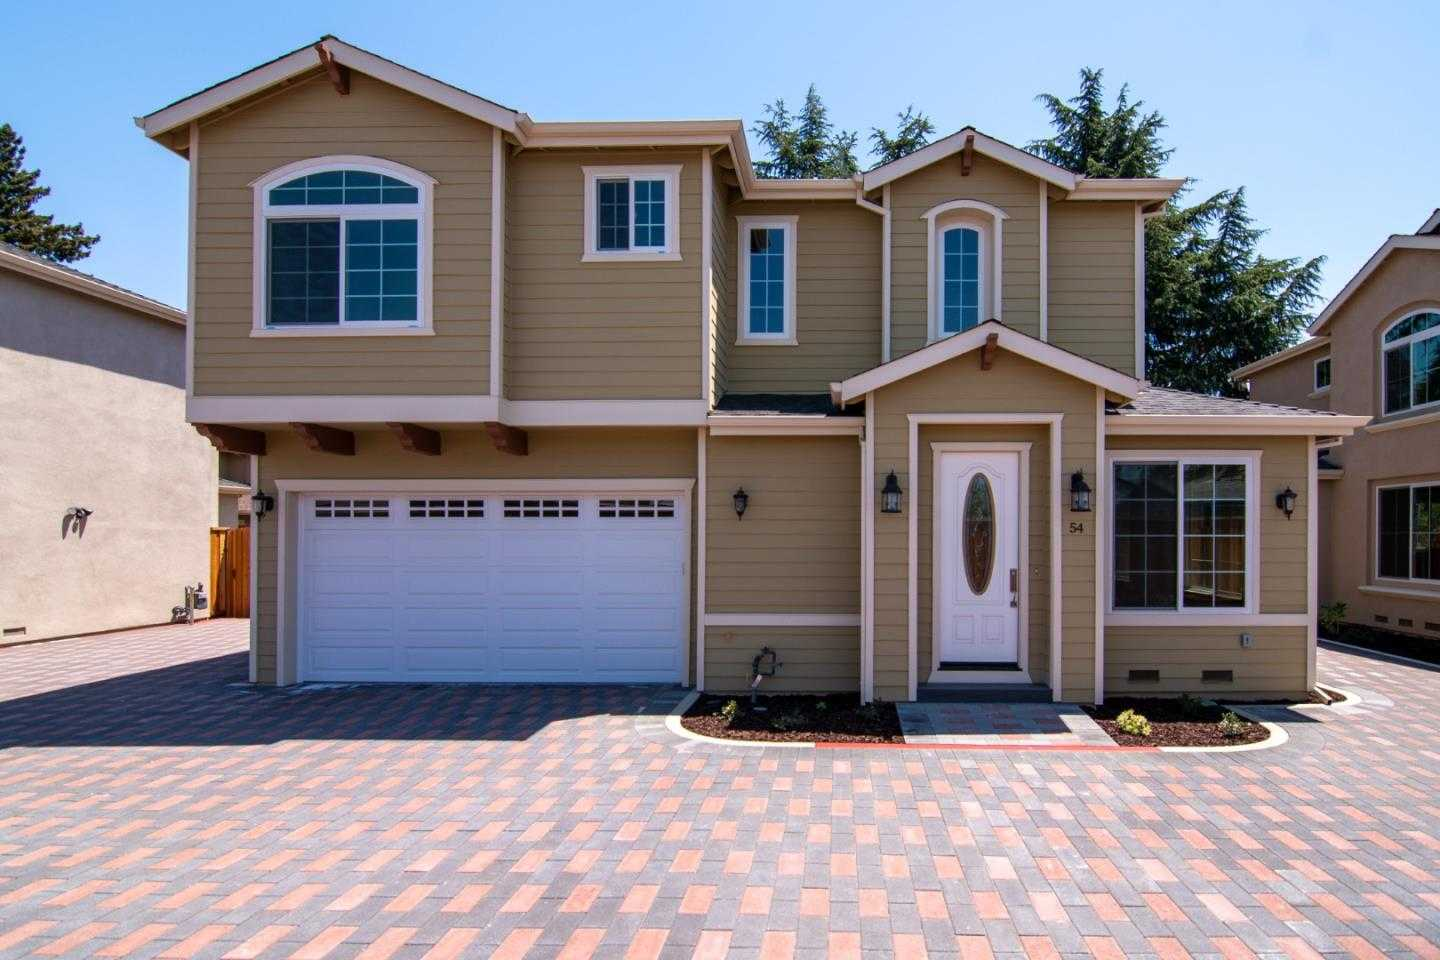 $1,500,000 - 4Br/4Ba -  for Sale in Campbell